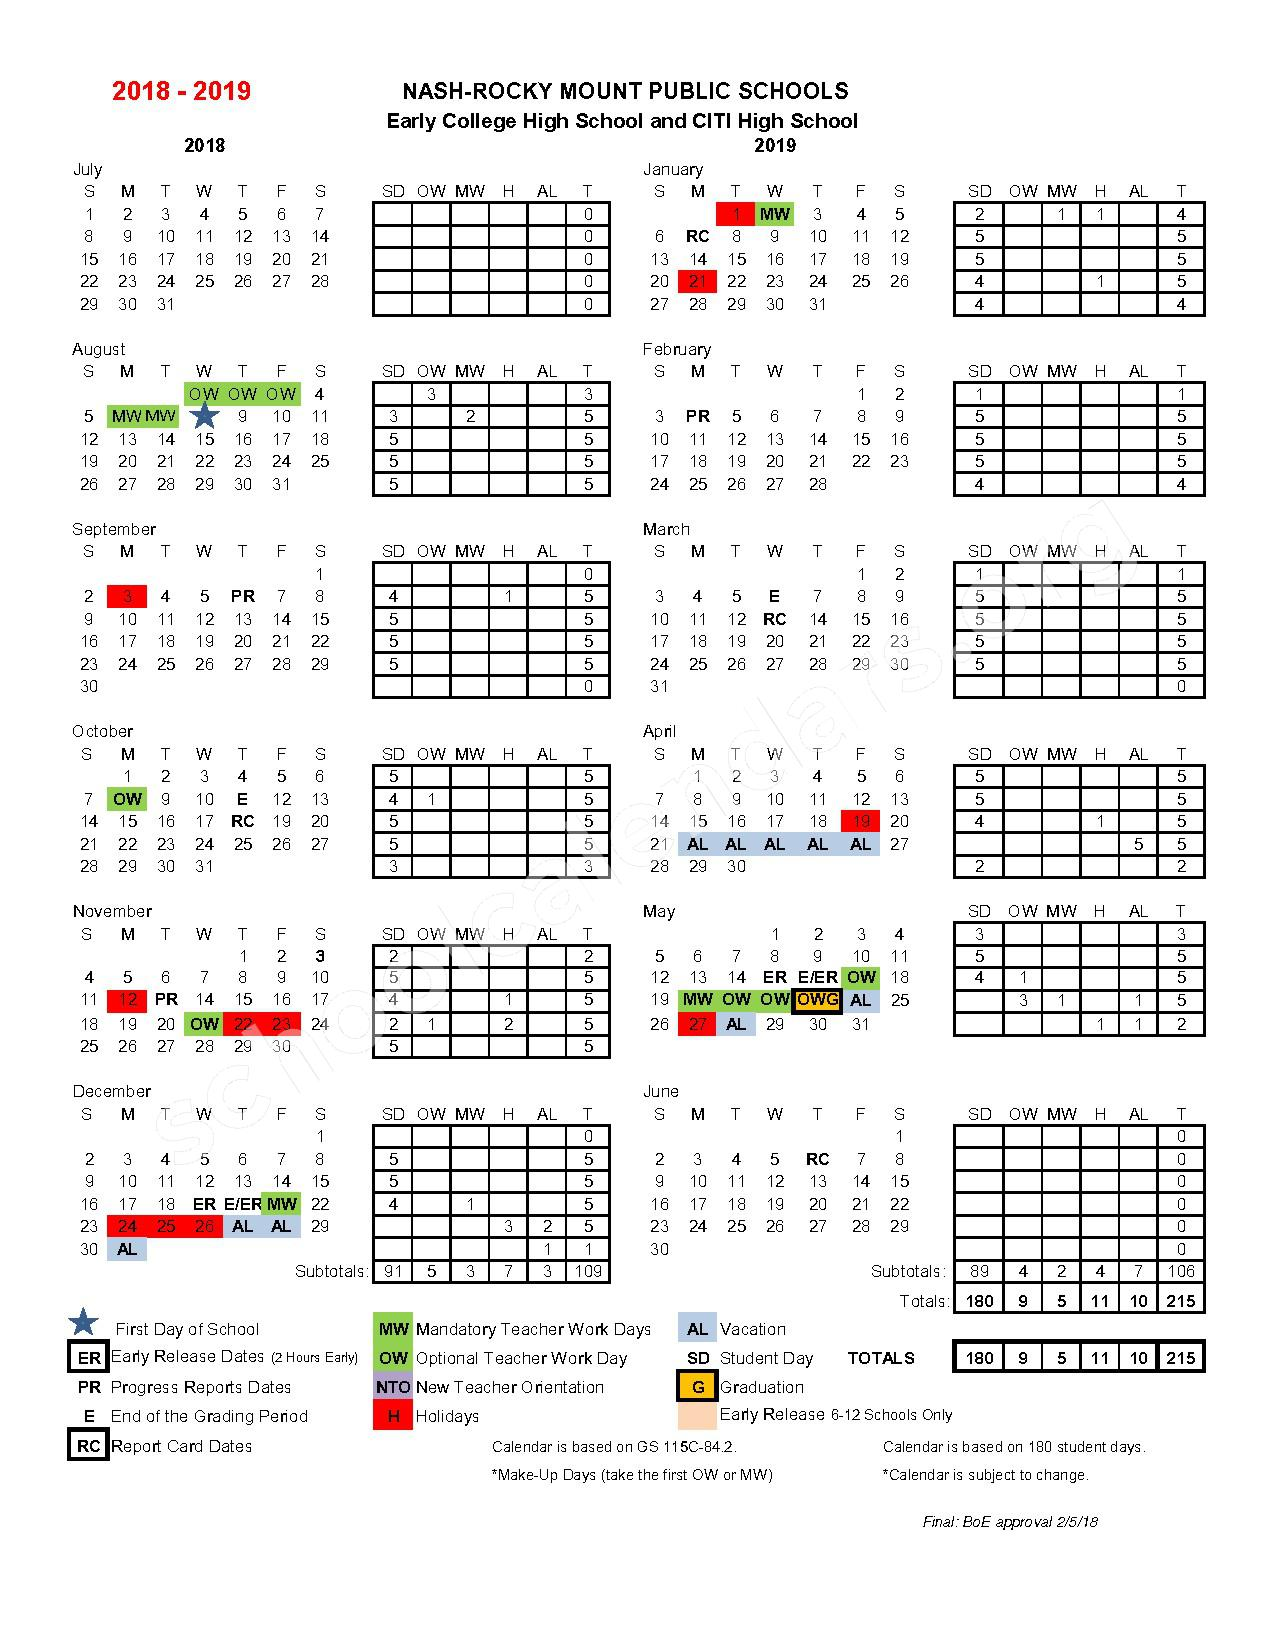 2018 - 2019 Early College and CITI High School Calendar – Southern Nash Middle School – page 1